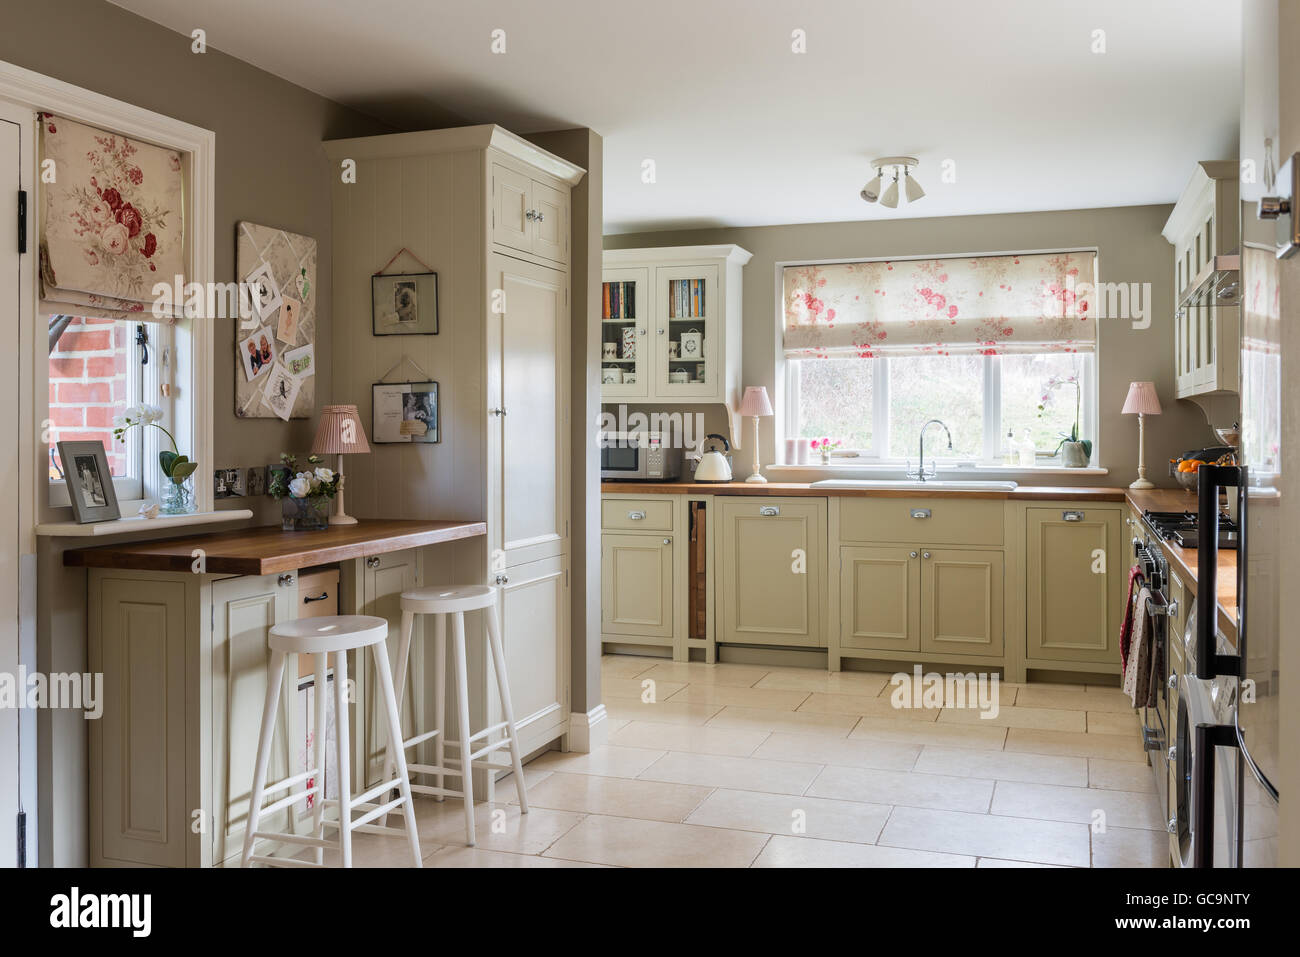 Country style kitchen with units from neptune and tumbled country style kitchen with units from neptune and tumbled limestone floor tiles the roman blind is made up in kate formas rose dailygadgetfo Choice Image